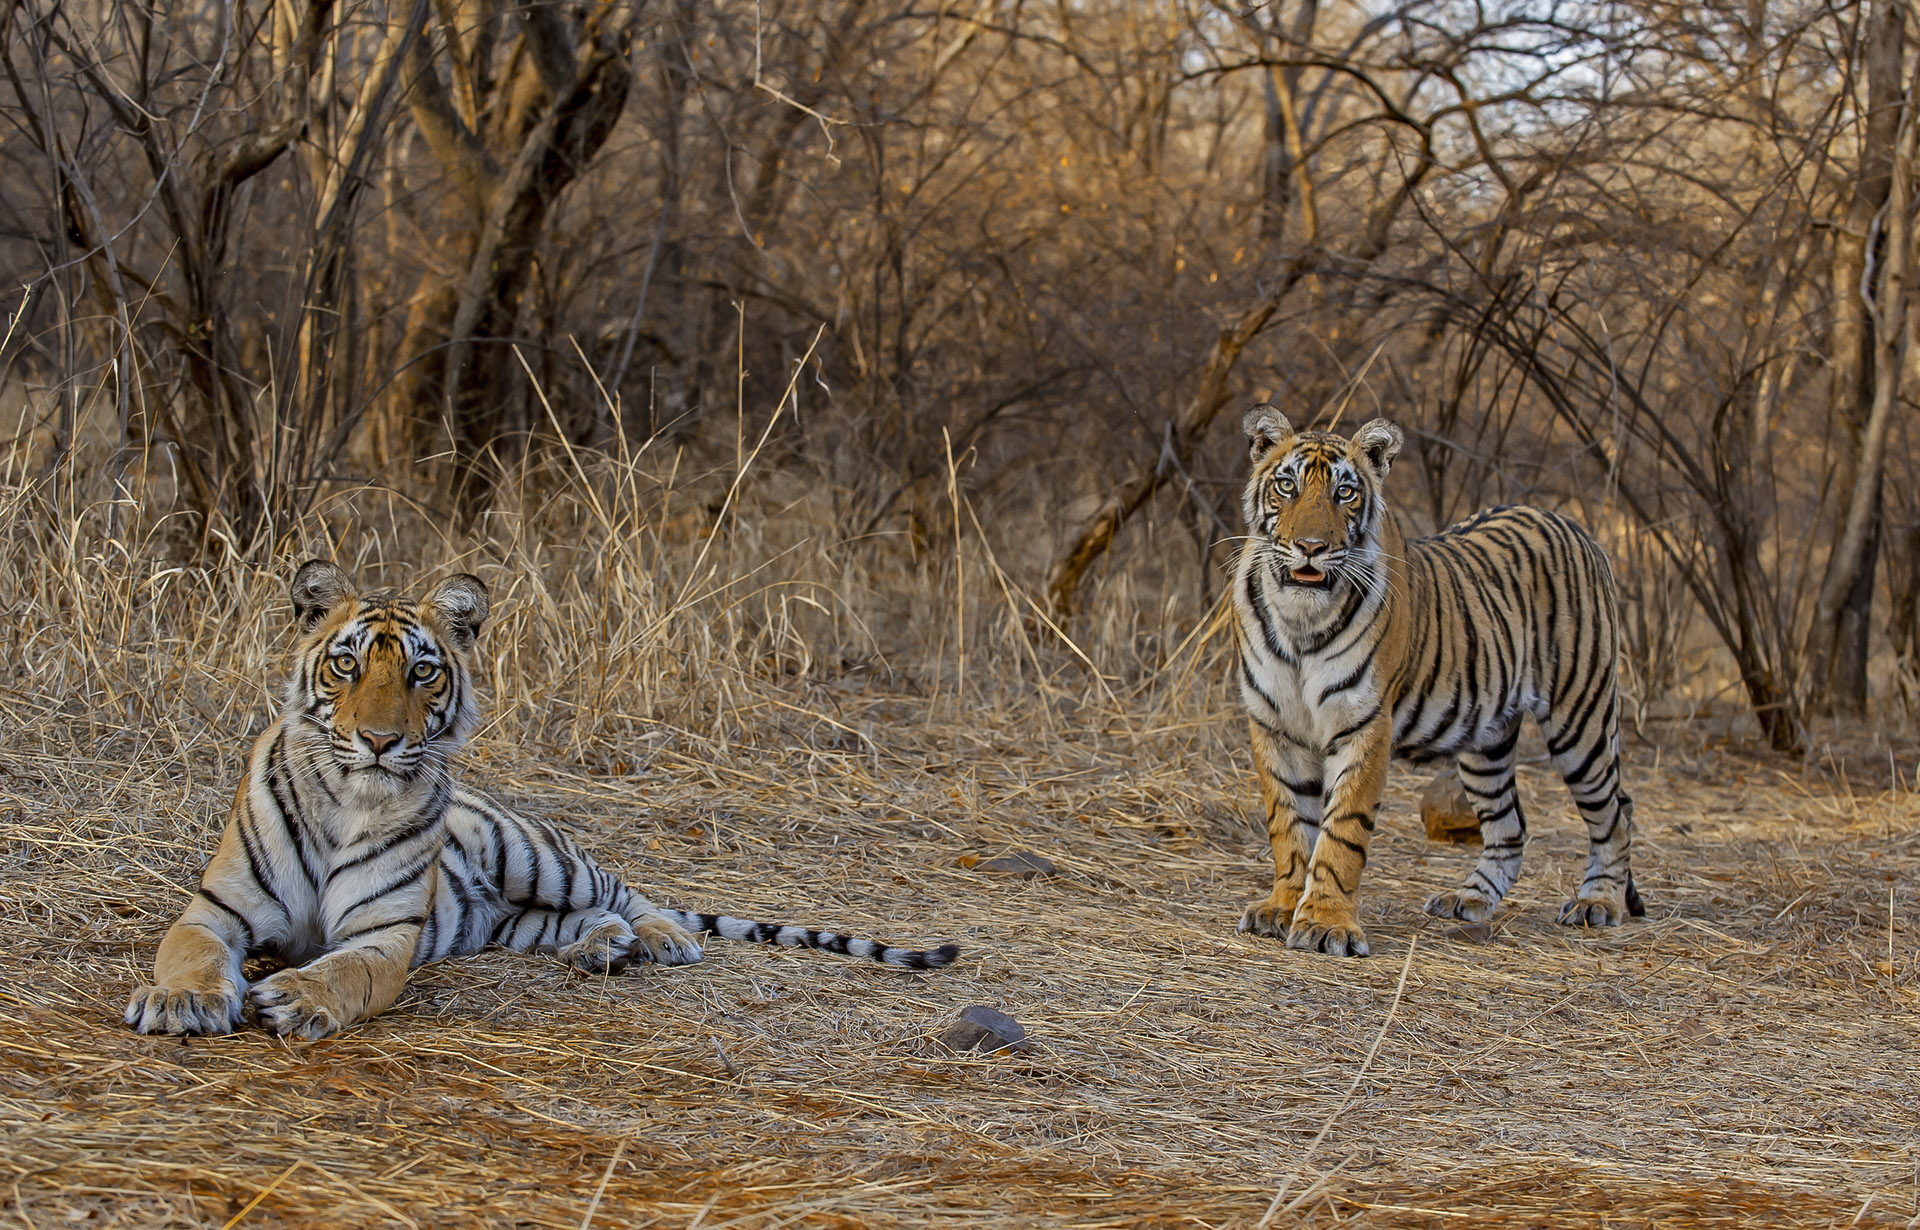 """Cubs begin exploring without the mother around 18 months of age. """"When female offspring become older and start getting more independent, they start using their mother's territory,"""" says Chatterjee. """"It is well established that female offspring will often try to settle adjacent to the mother's territory, while males move farther out and establish very independent territories from that of the mother."""""""